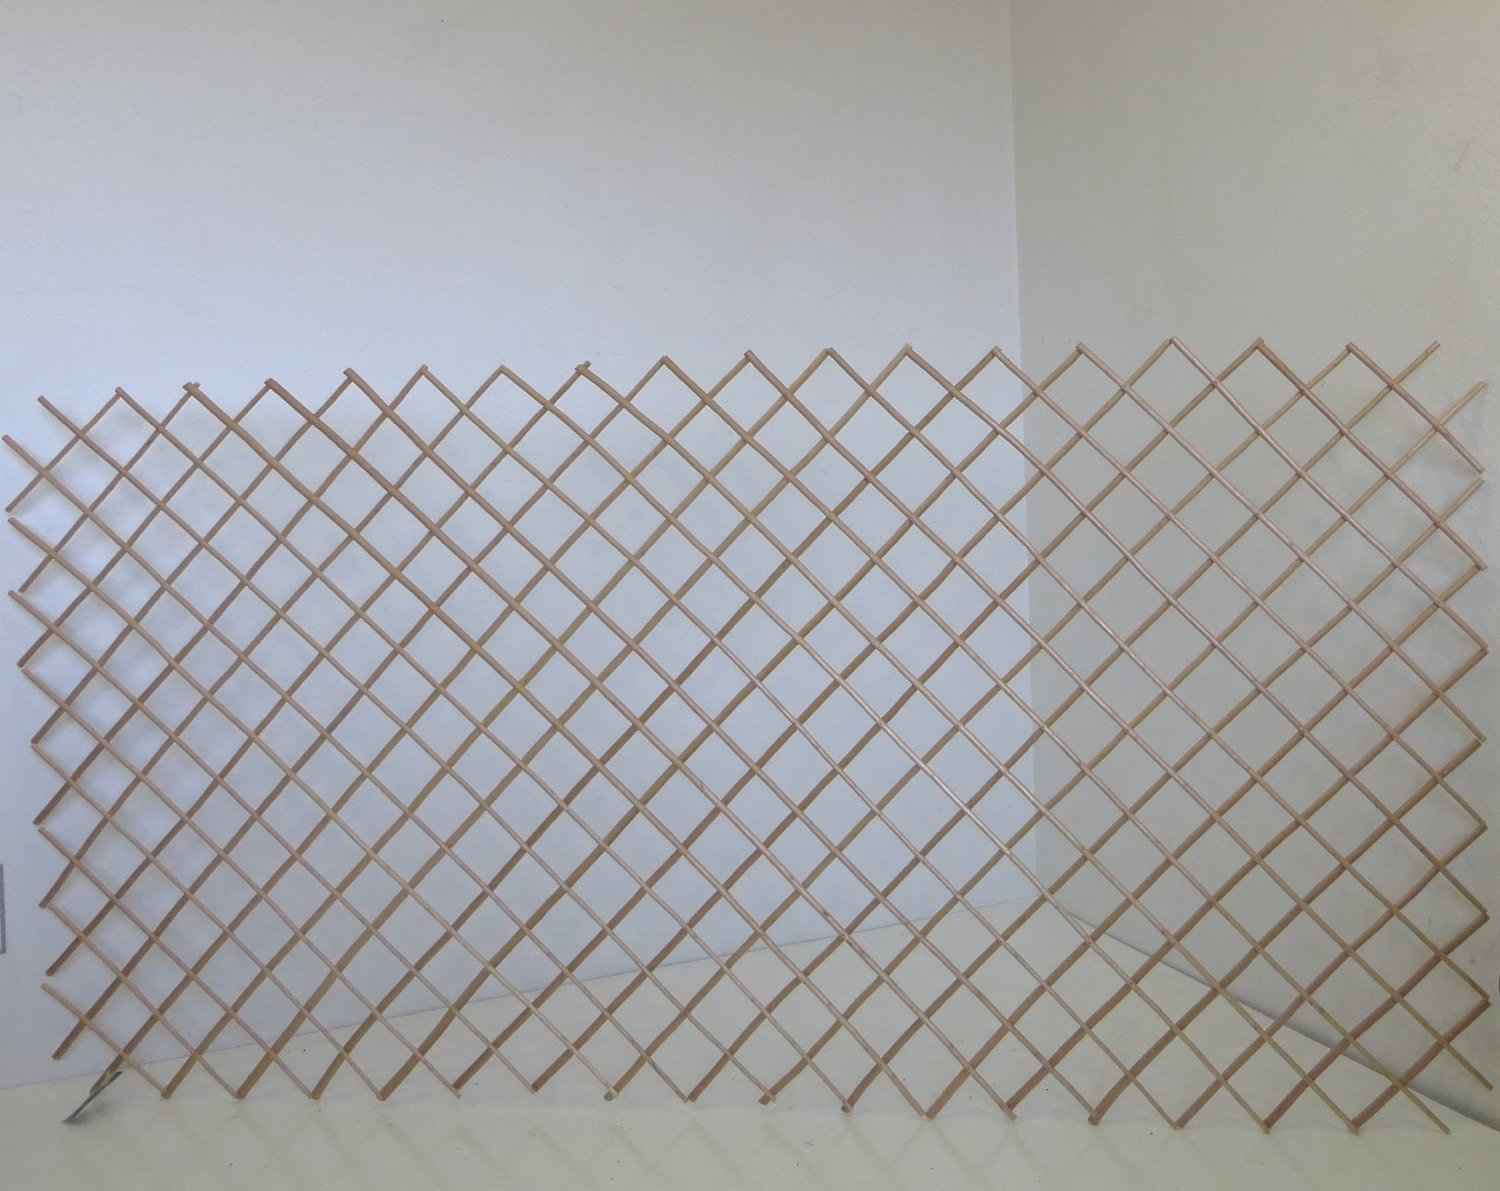 Cheap Trellis Top Fence, find Trellis Top Fence deals on line at ...